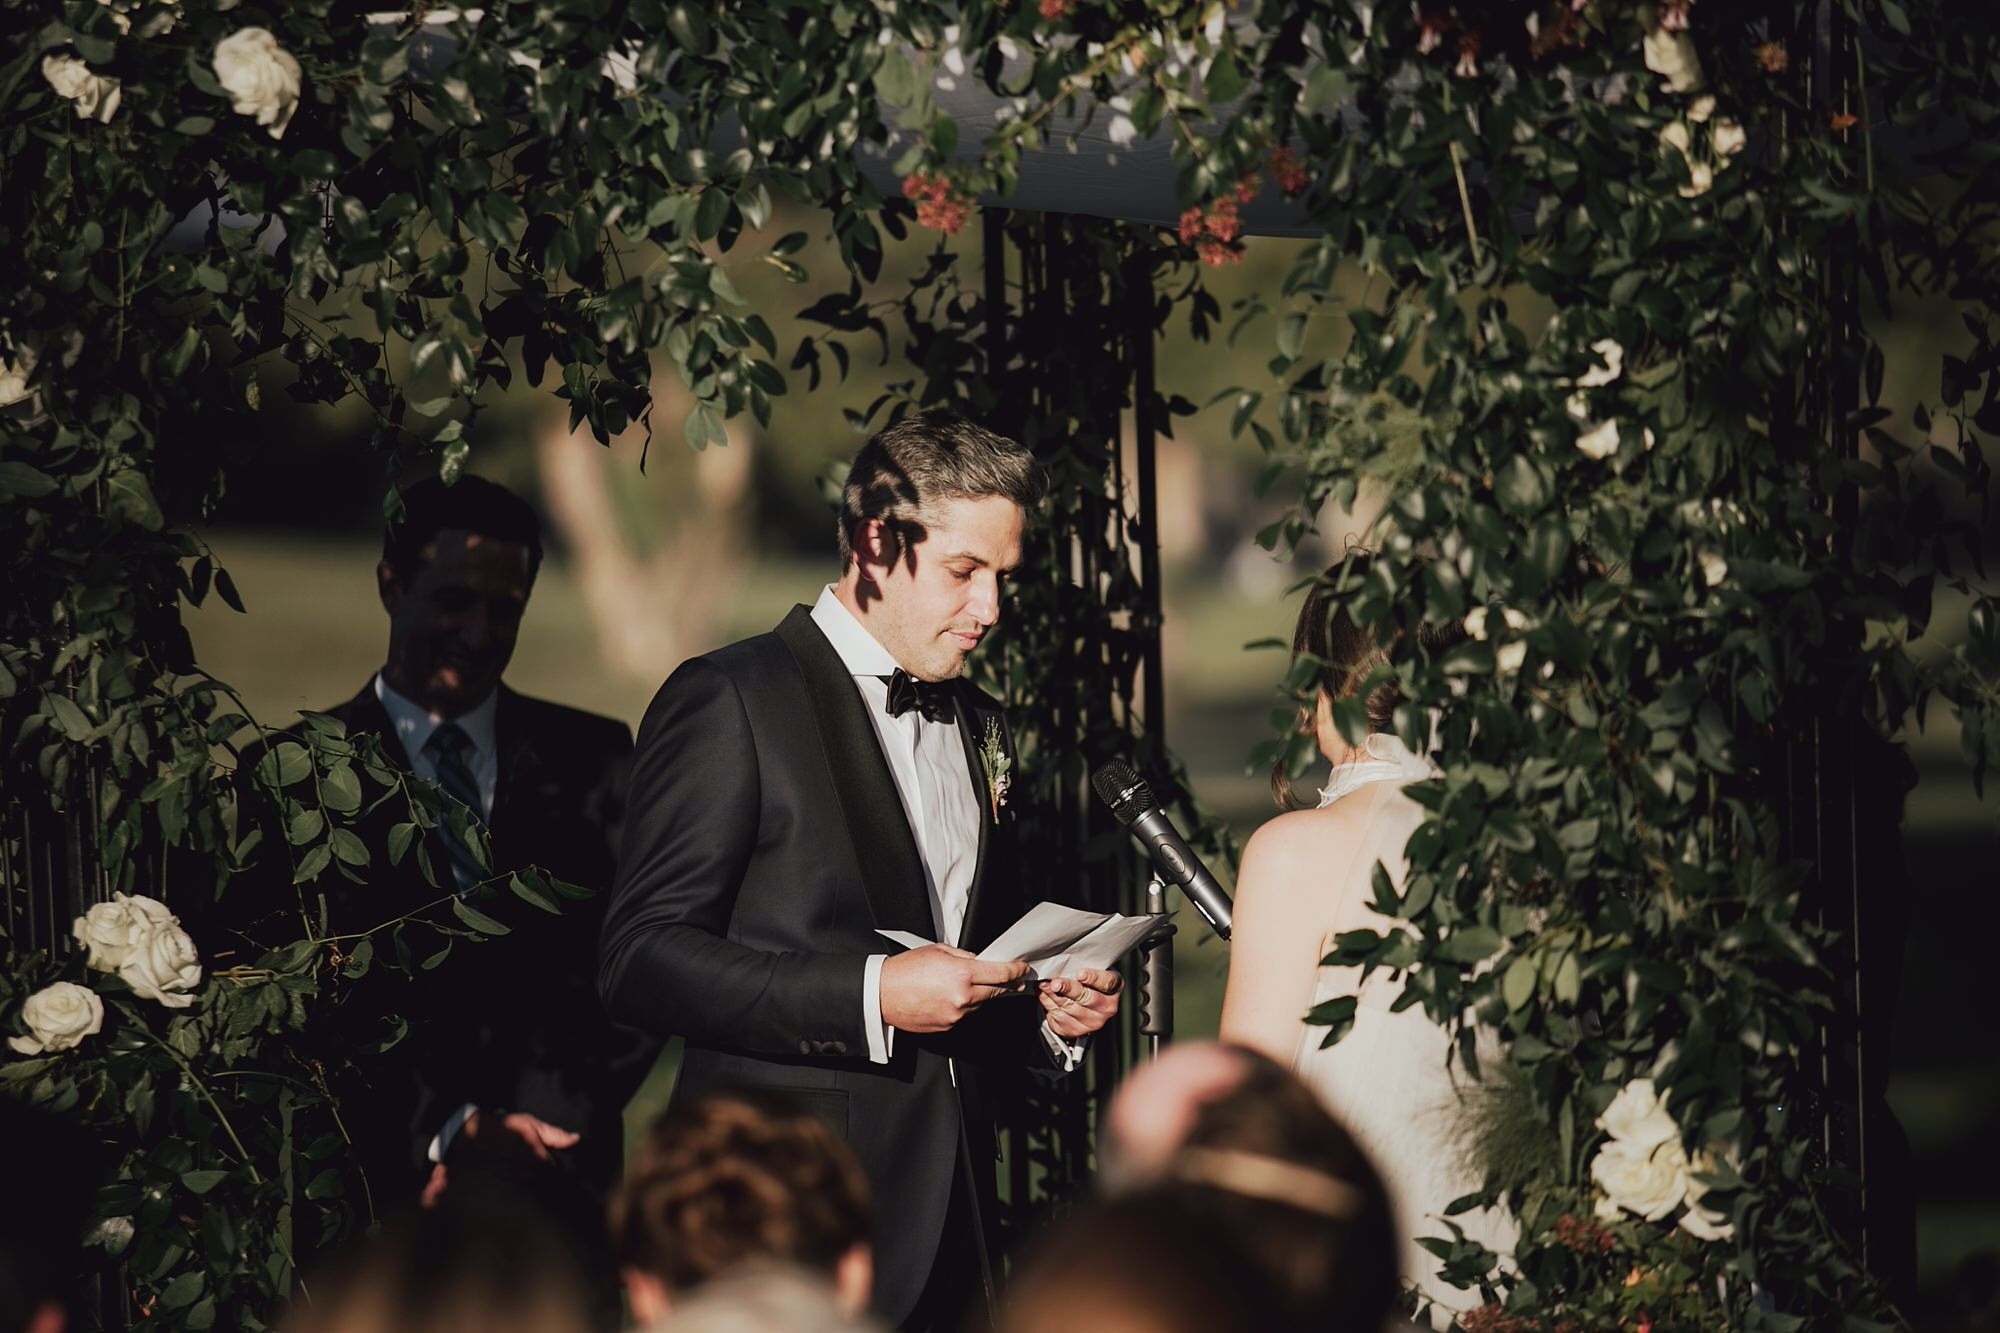 Andy giving his personal vows